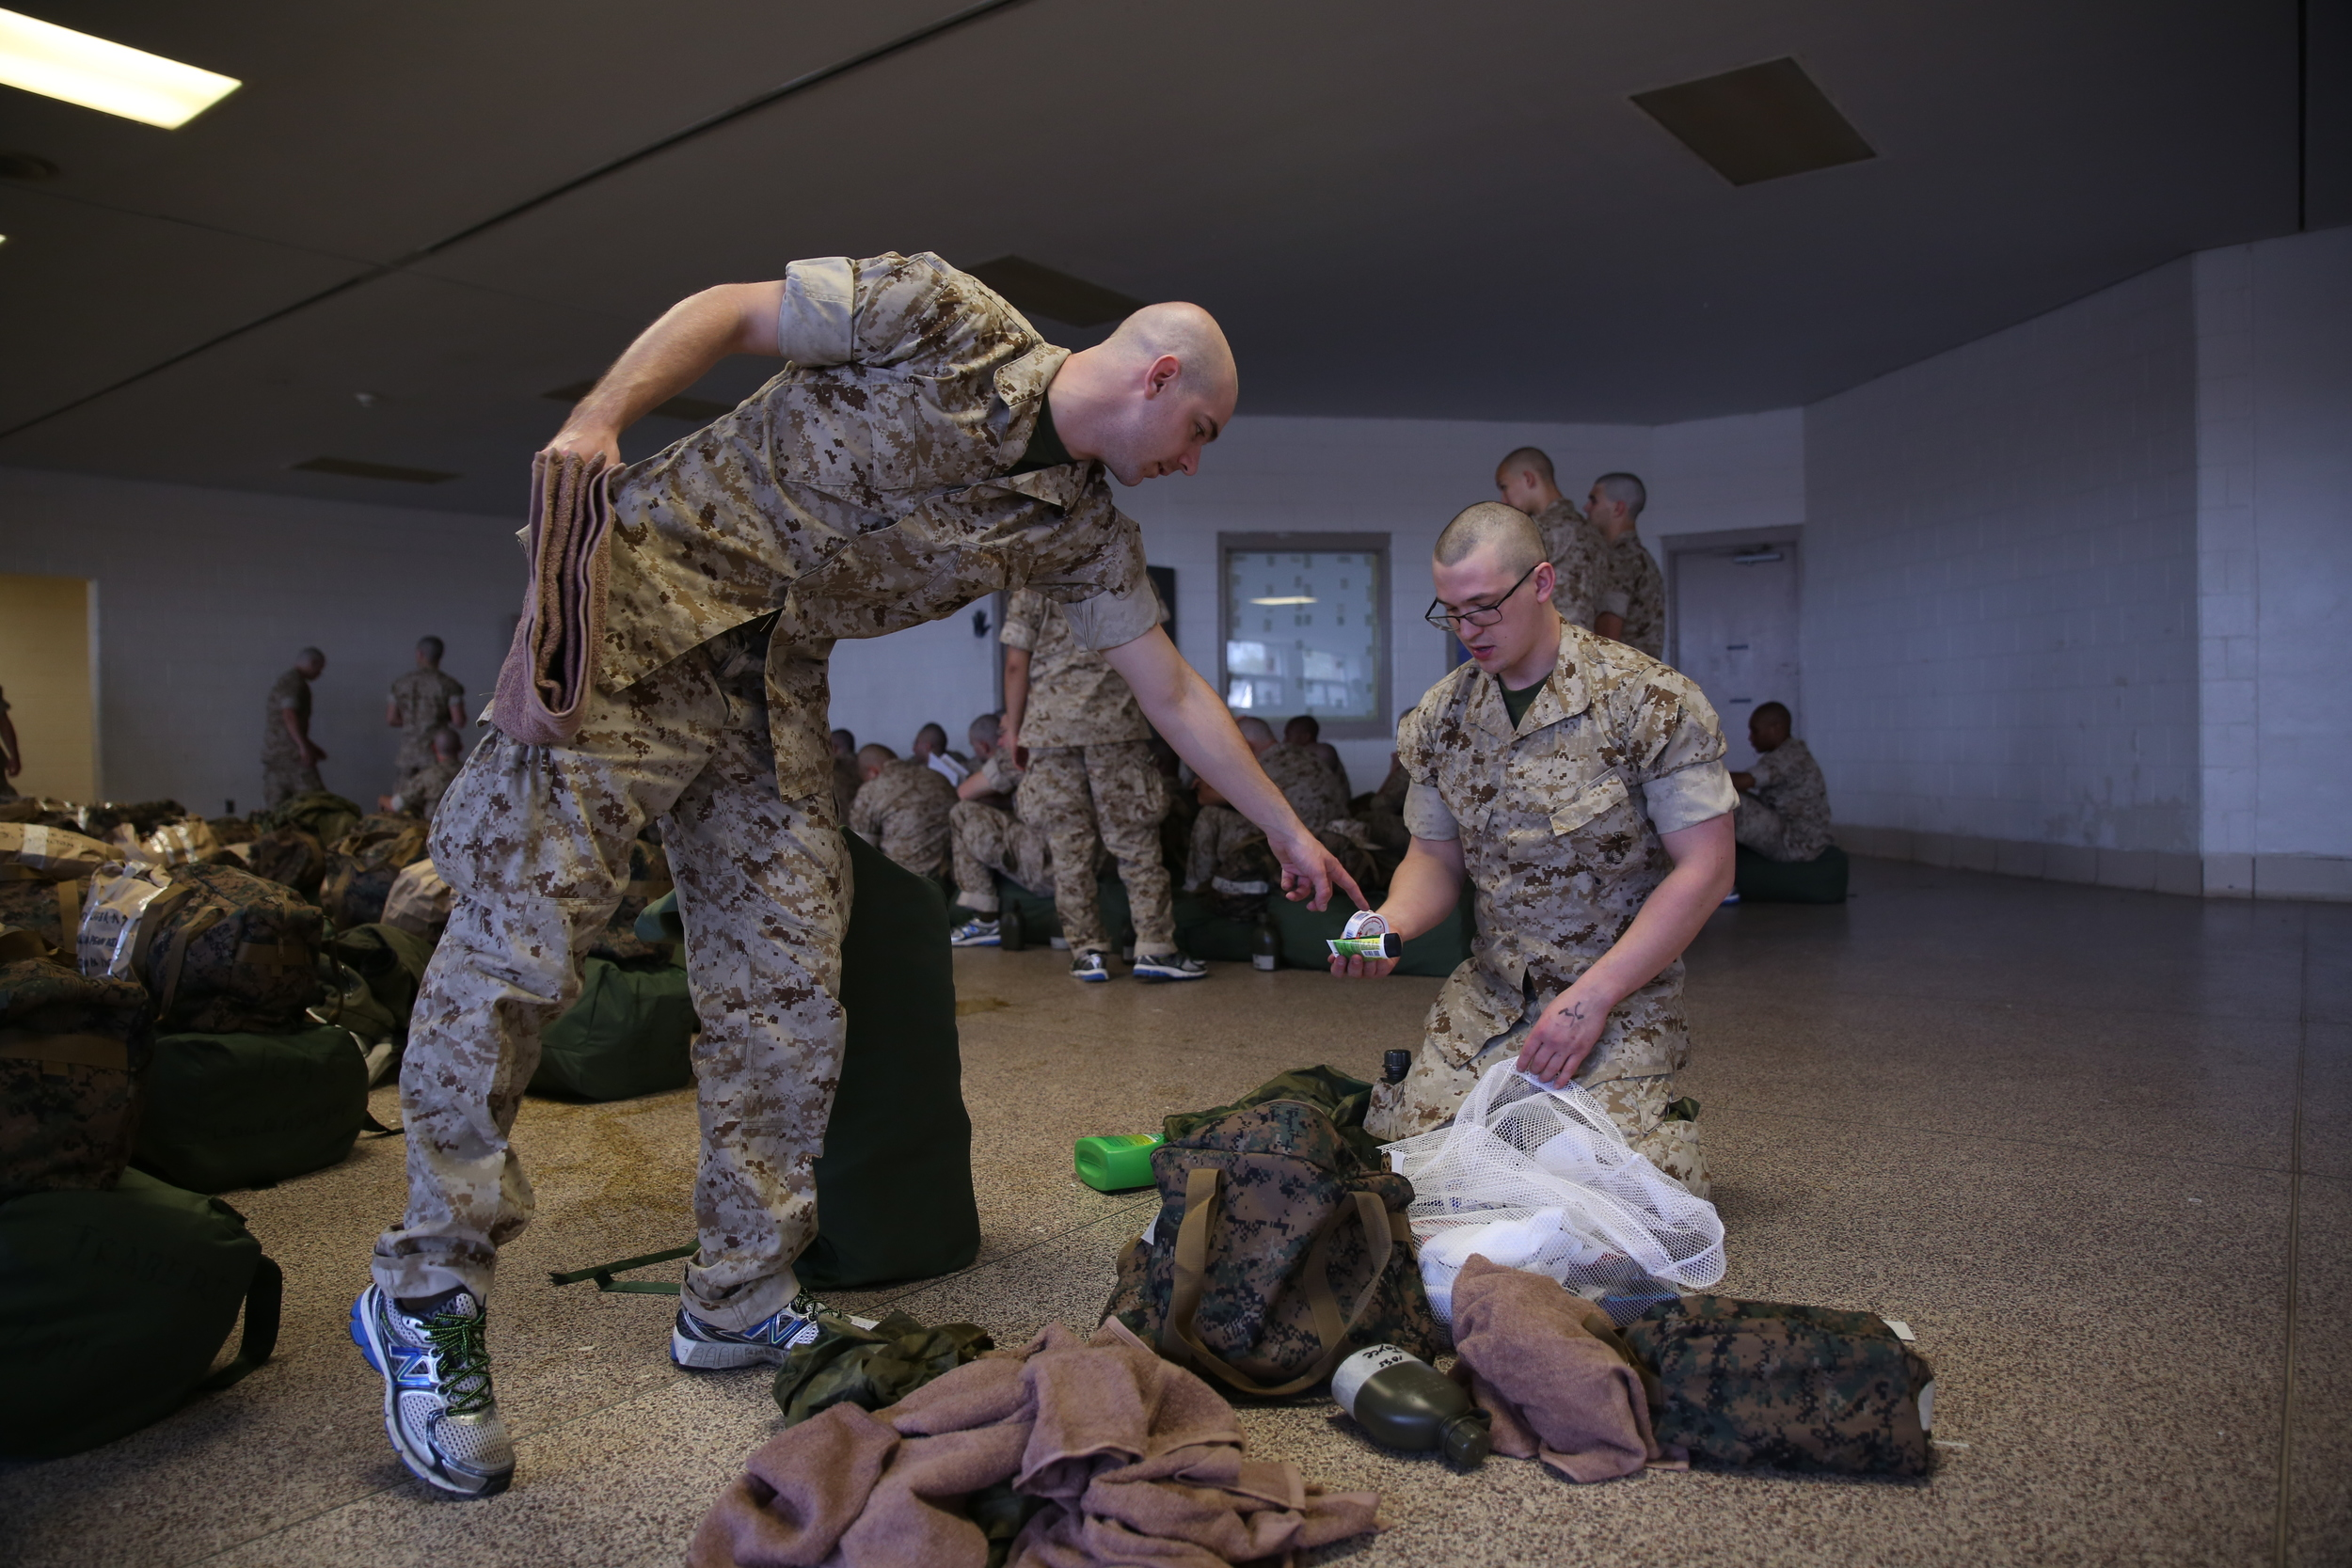 A Marine Corps recruit instructs another how to organize his things. Photo by Cpl. Octavia Davis, United States Marine Corps.